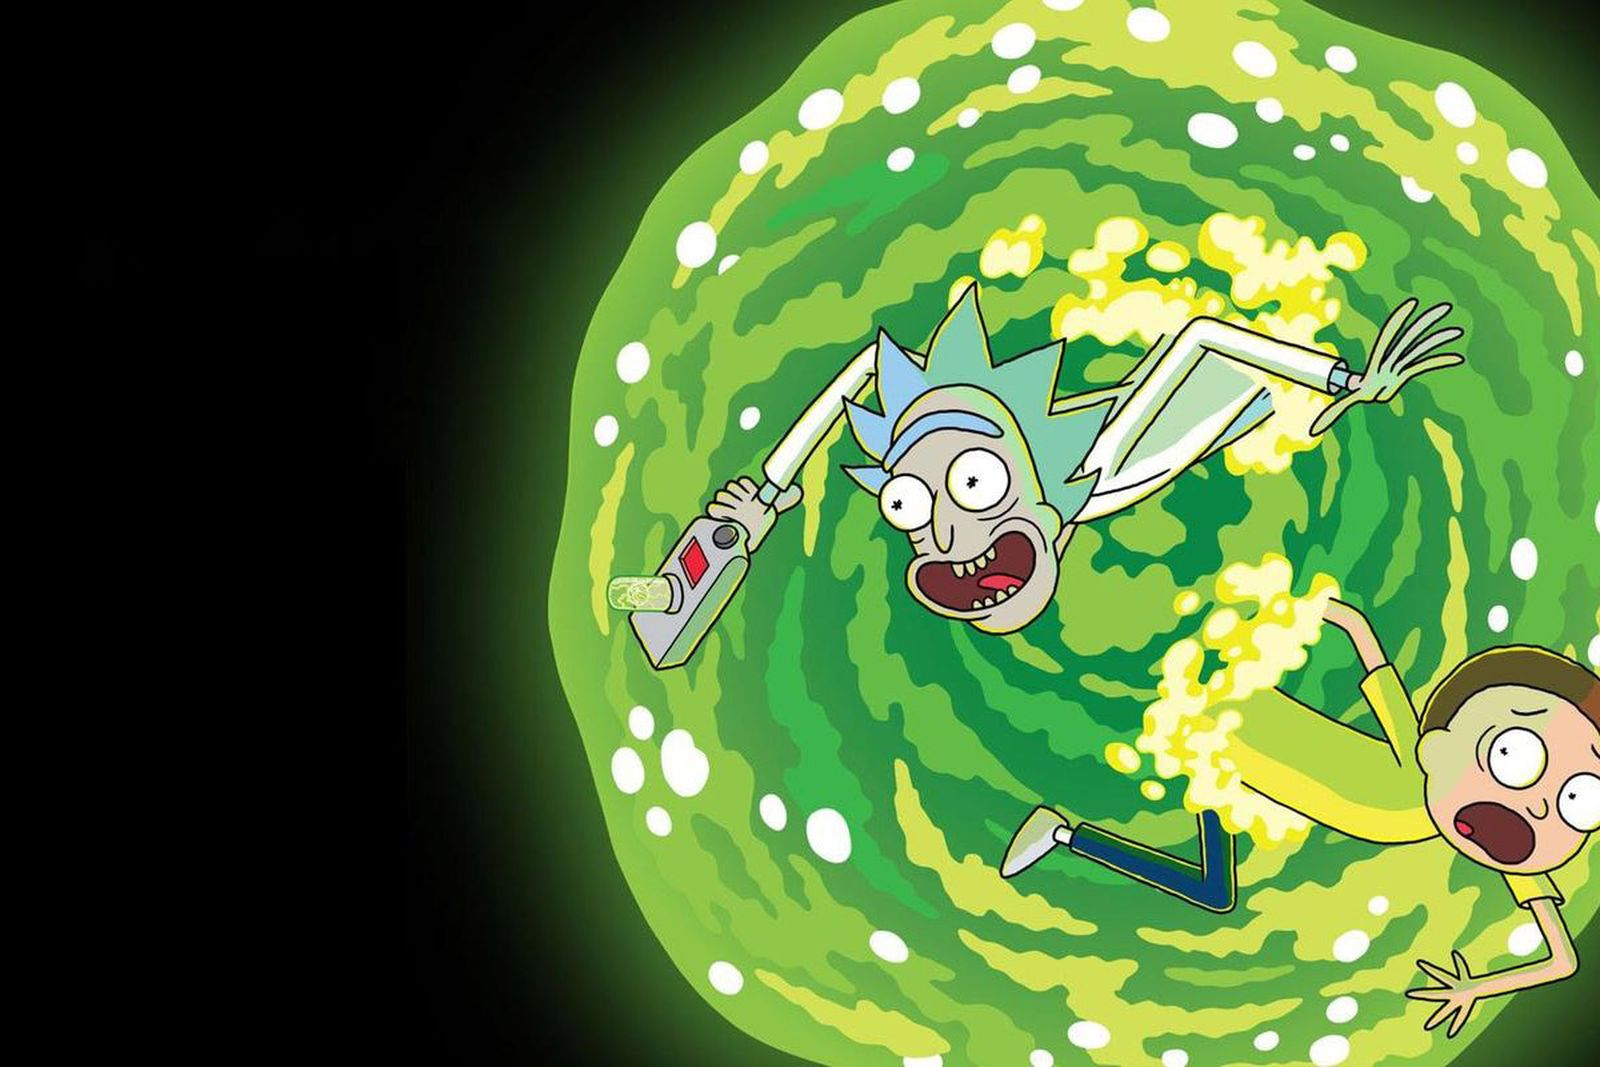 rick-and-morty-season-4-release-date-01